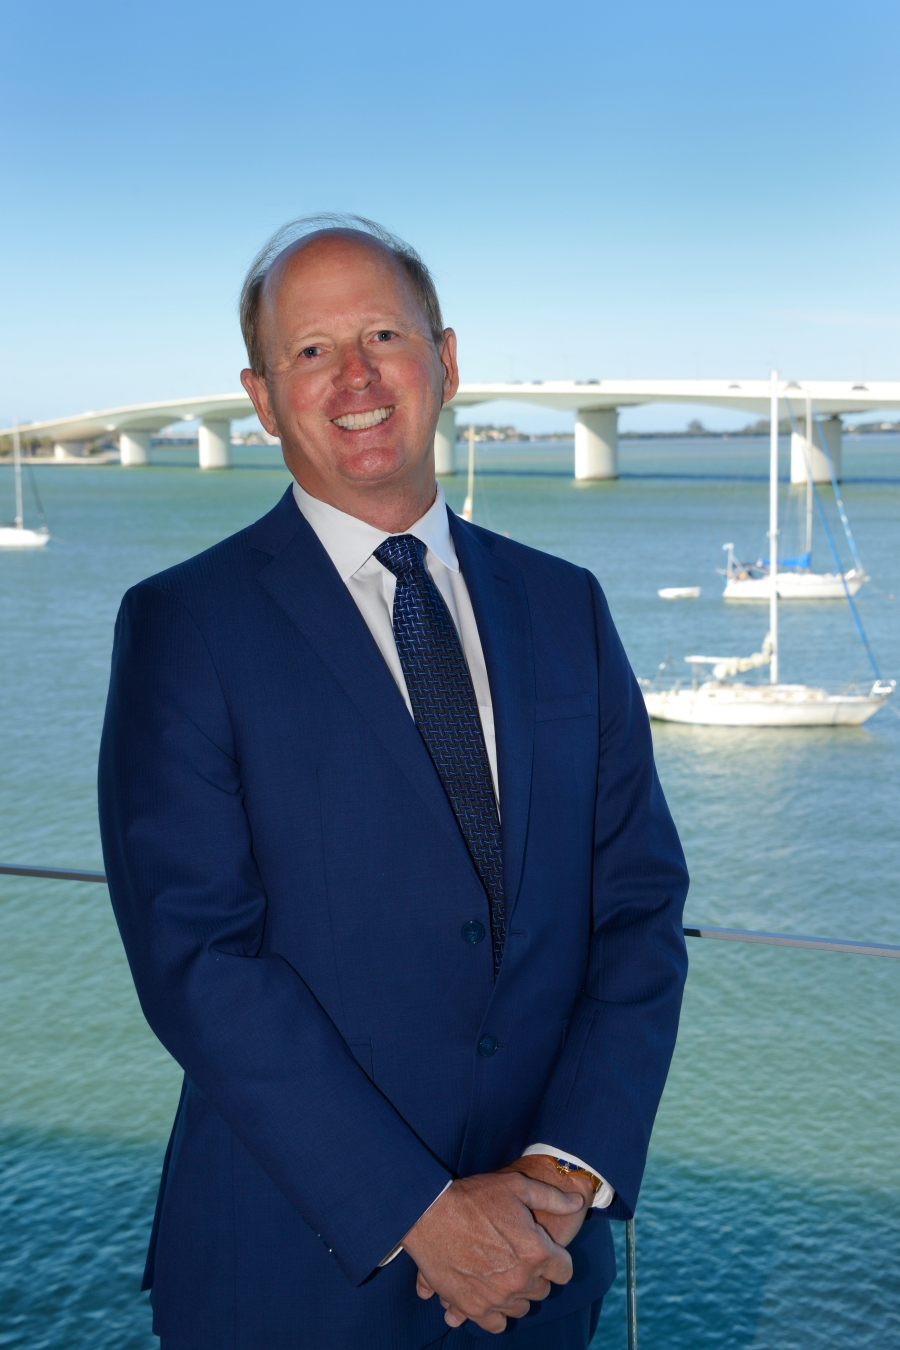 ROGER PETTINGELL RANKED AMONG TOP REAL ESTATE AGENTS IN FLORIDA BY REAL TRENDS AMERICA'S BEST